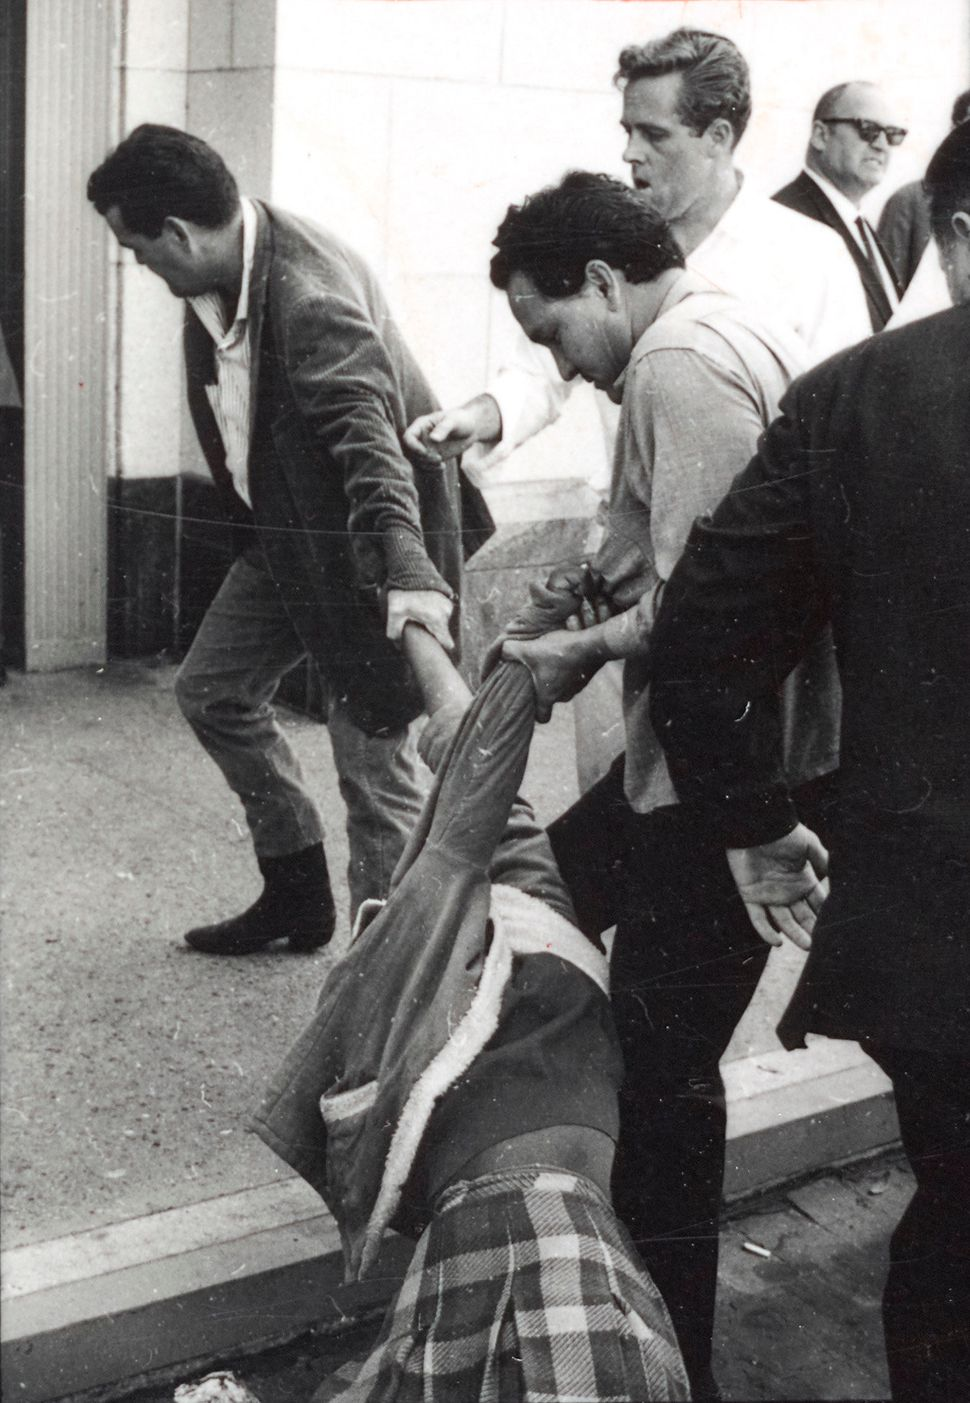 Protesters being physically removed during a demonstration against the shocking violence in Selma in March 1965. No clouds of